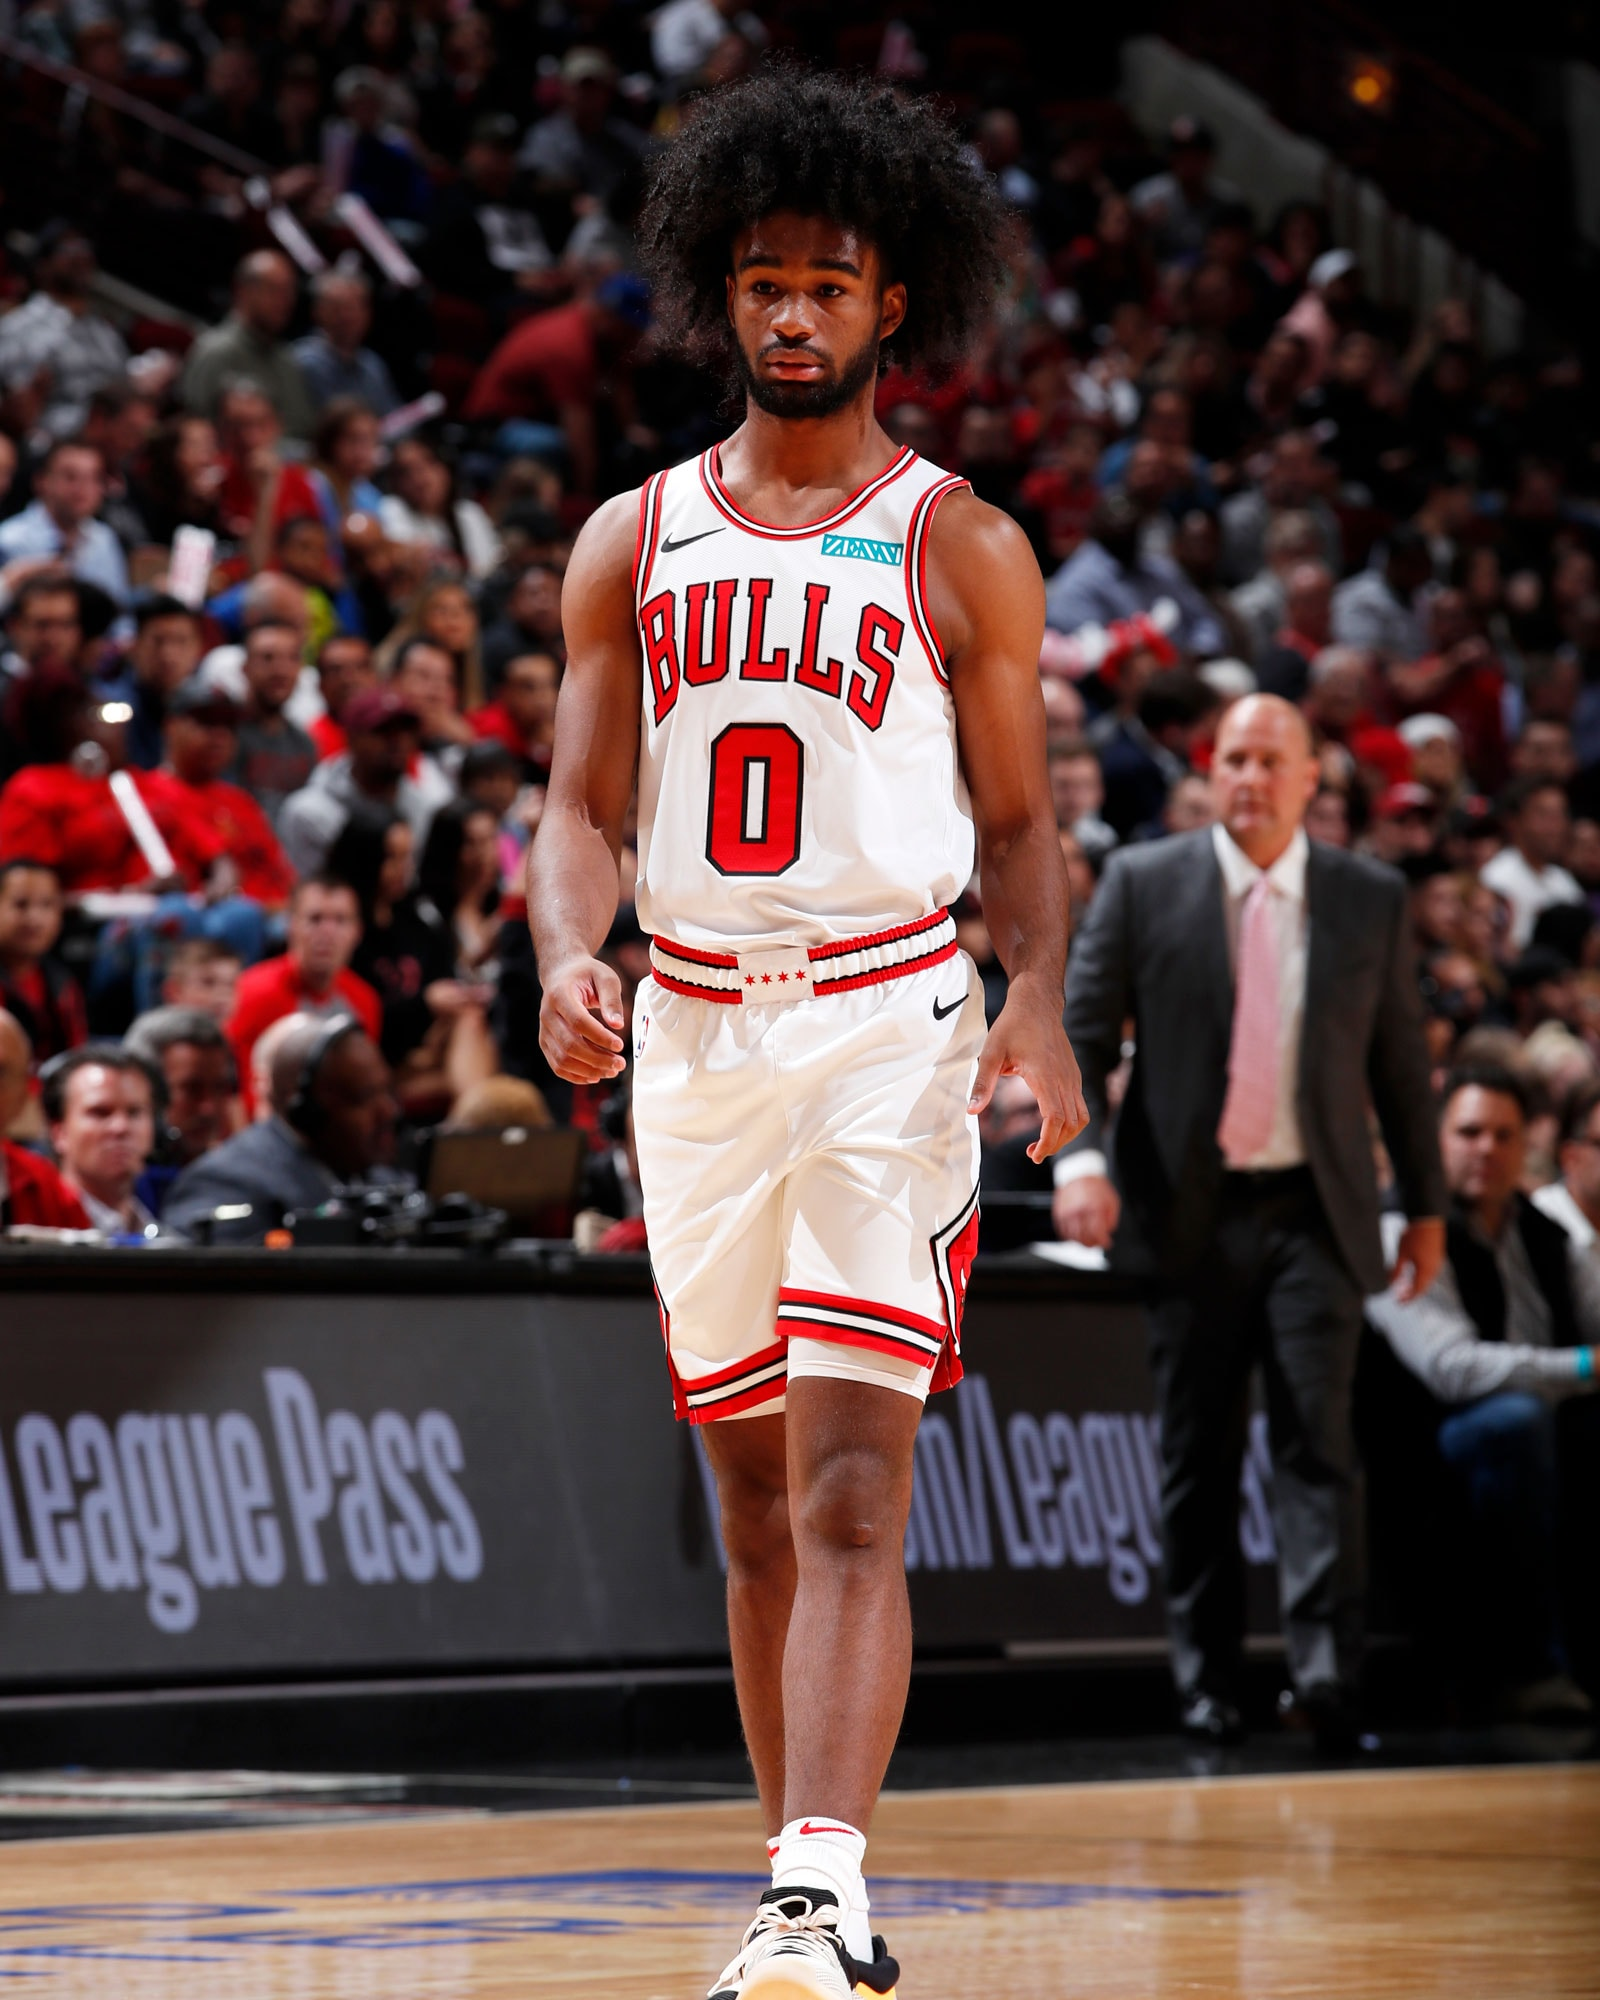 Coby White #0 of the Chicago Bulls looks on during a pre-season game against the New Orleans Pelicans on October 8, 2019 at United Center in Chicago, Illinois.